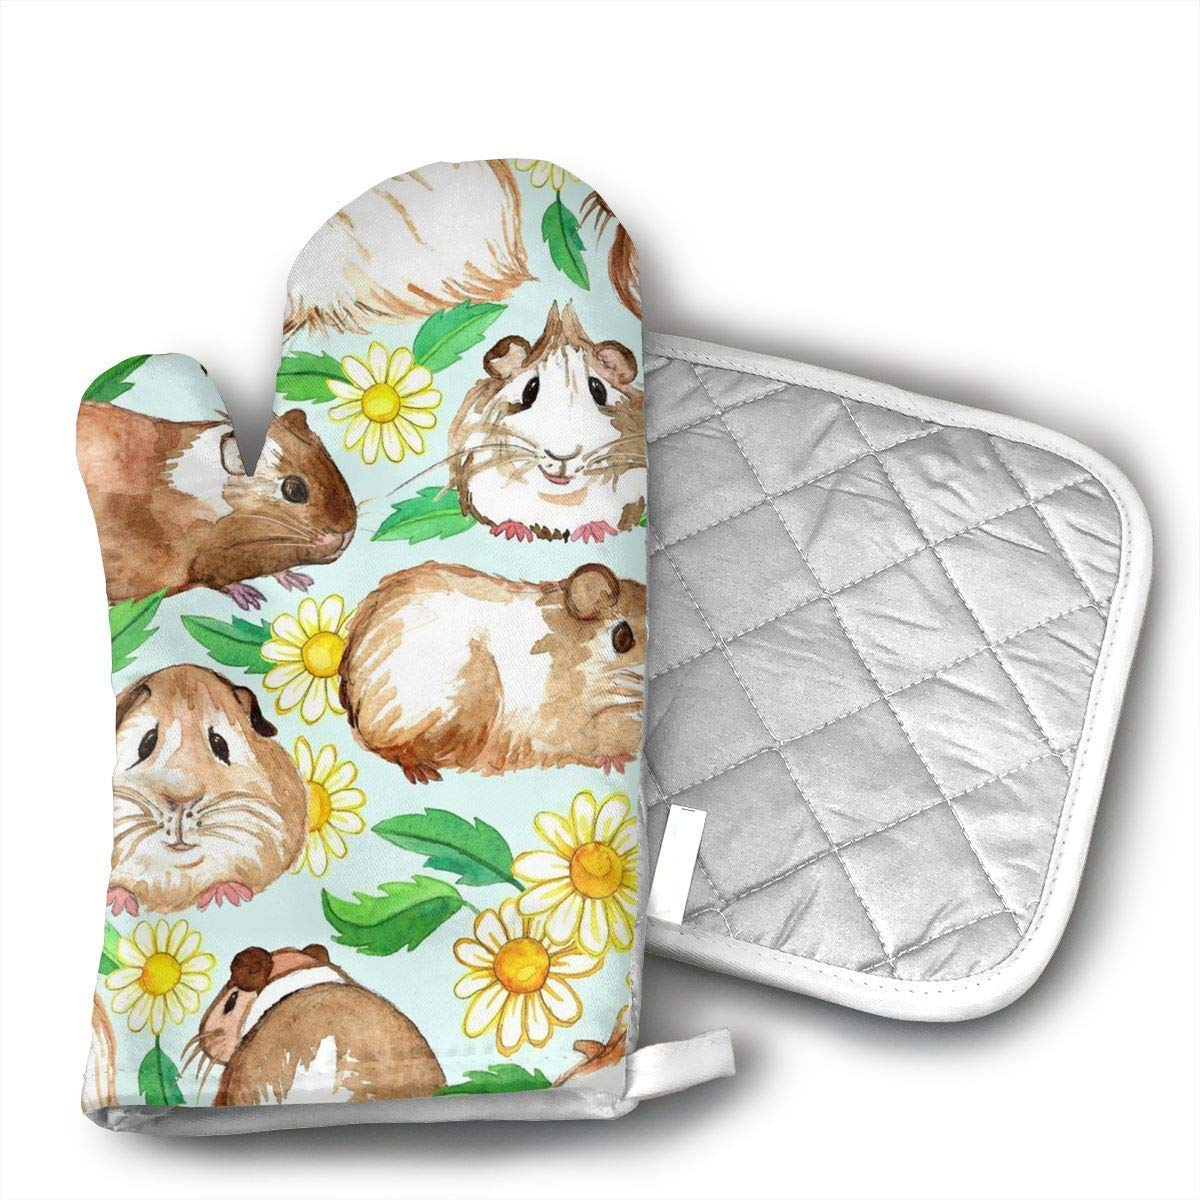 Guinea Pigs Daisies Oven Mitts and Pot Holders Set with Polyester Cotton Non-Slip Grip, Heat Resistant, Oven Gloves for BBQ Cooking Baking, Grilling